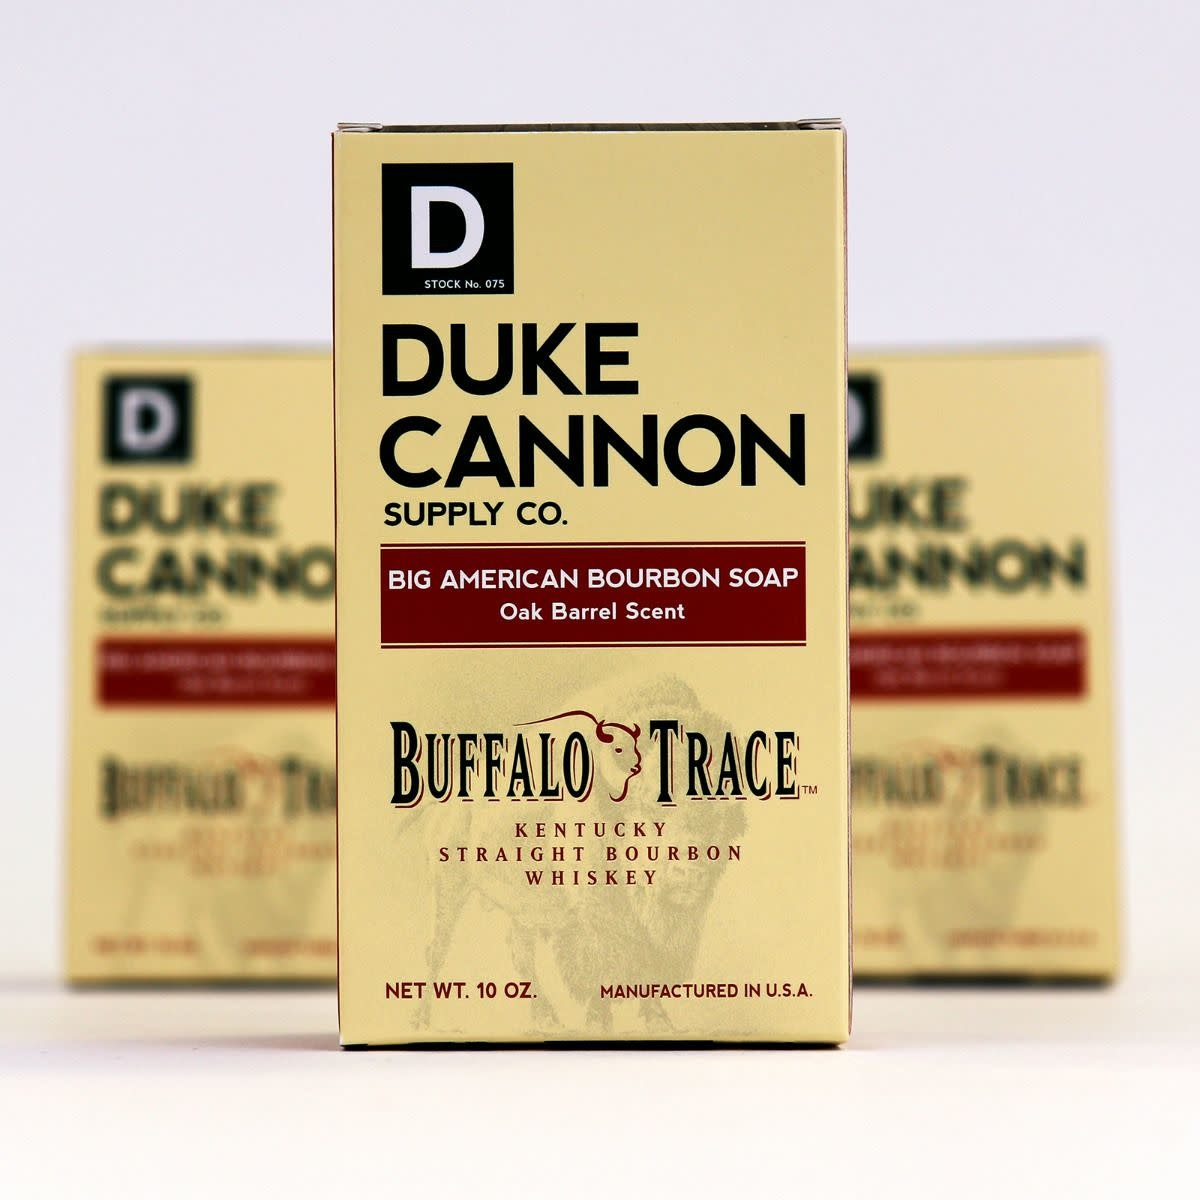 Duke Cannon Big American Bourbon Soap